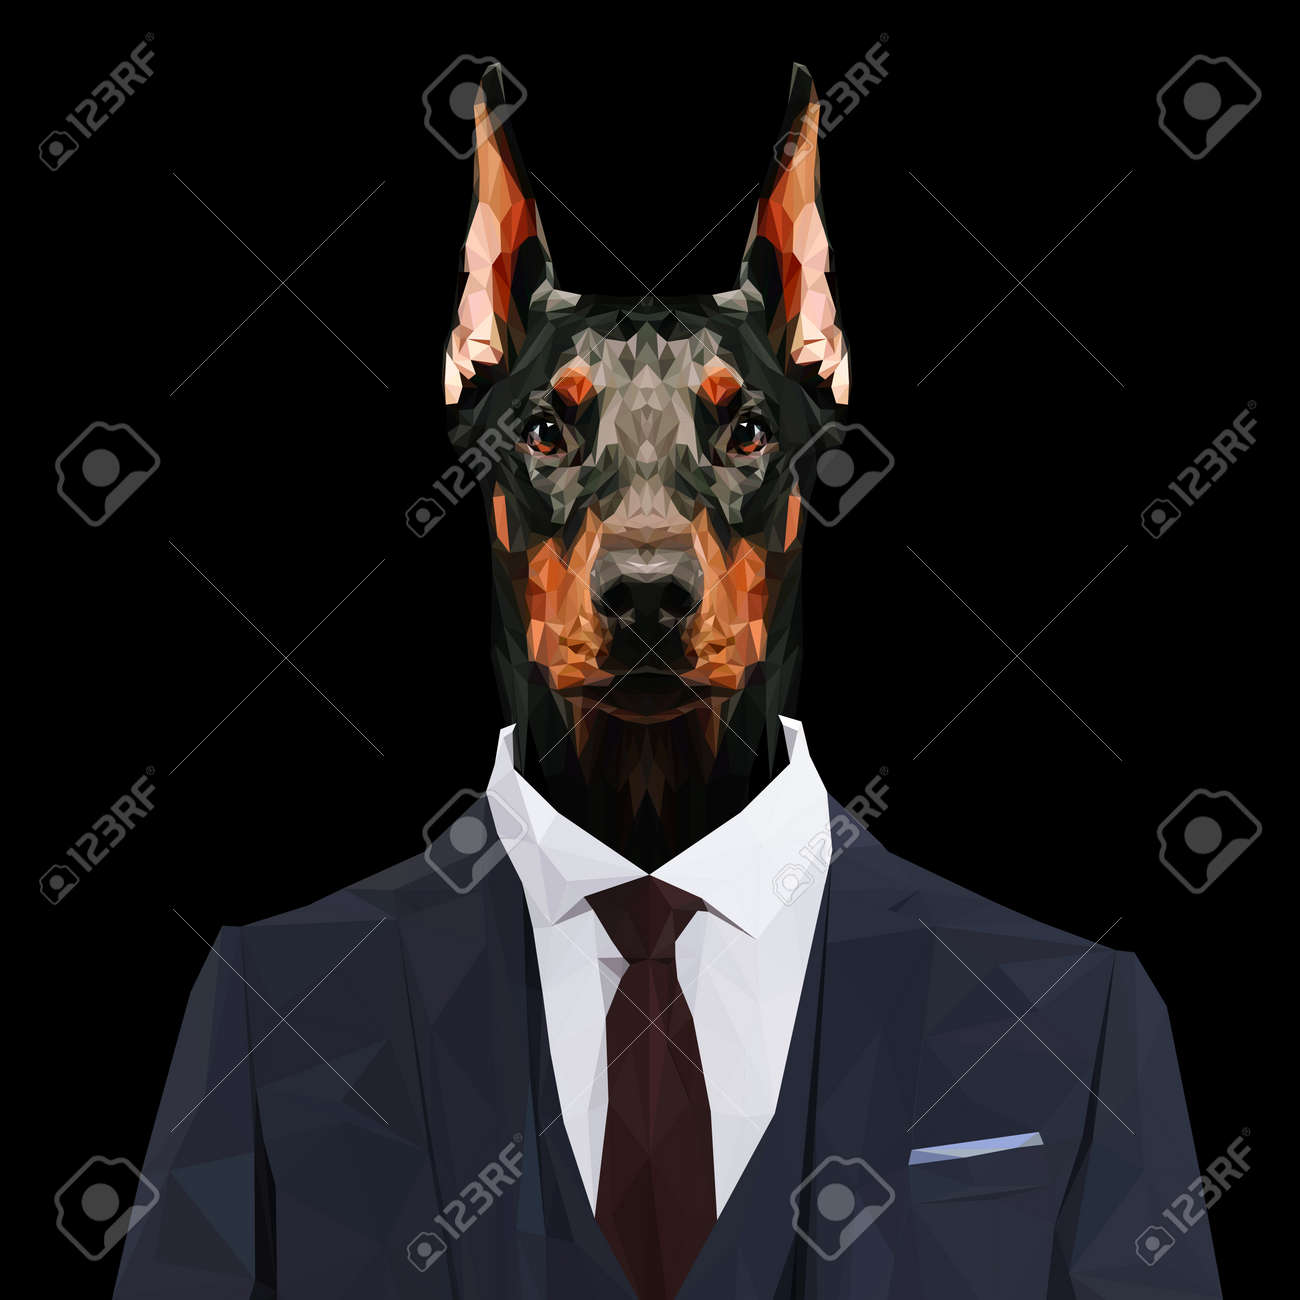 Doberman Pinscher Dog Animal Dressed Up In Navy Blue Suit With Royalty Free Cliparts Vectors And Stock Illustration Image 60979010